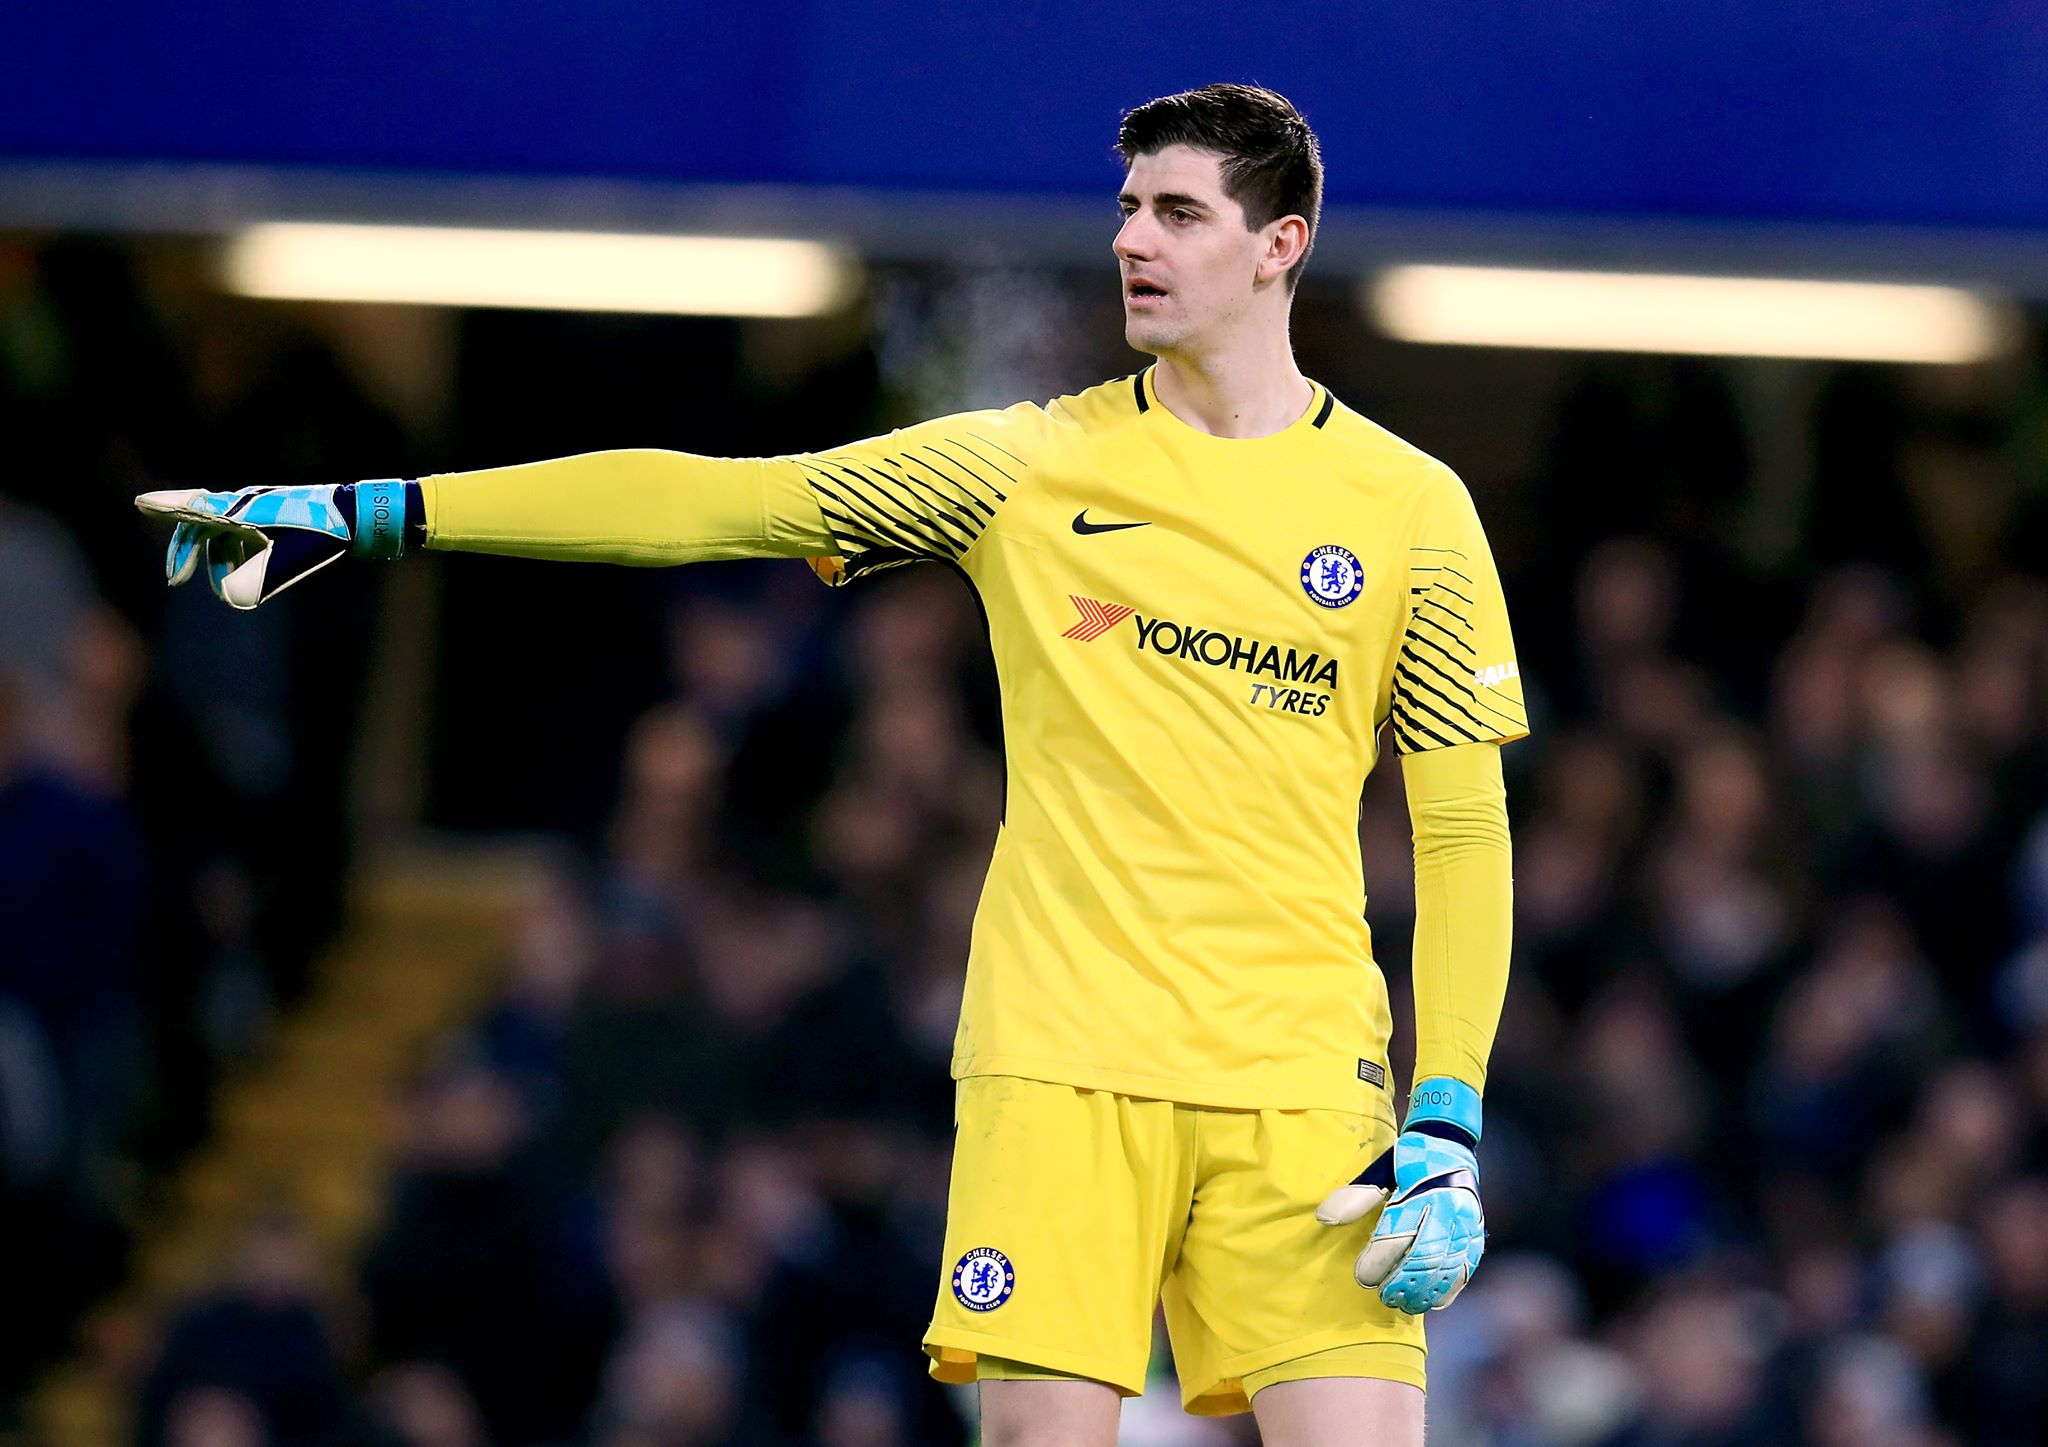 Player shockingly excluded from Chelsea's Europa League squad